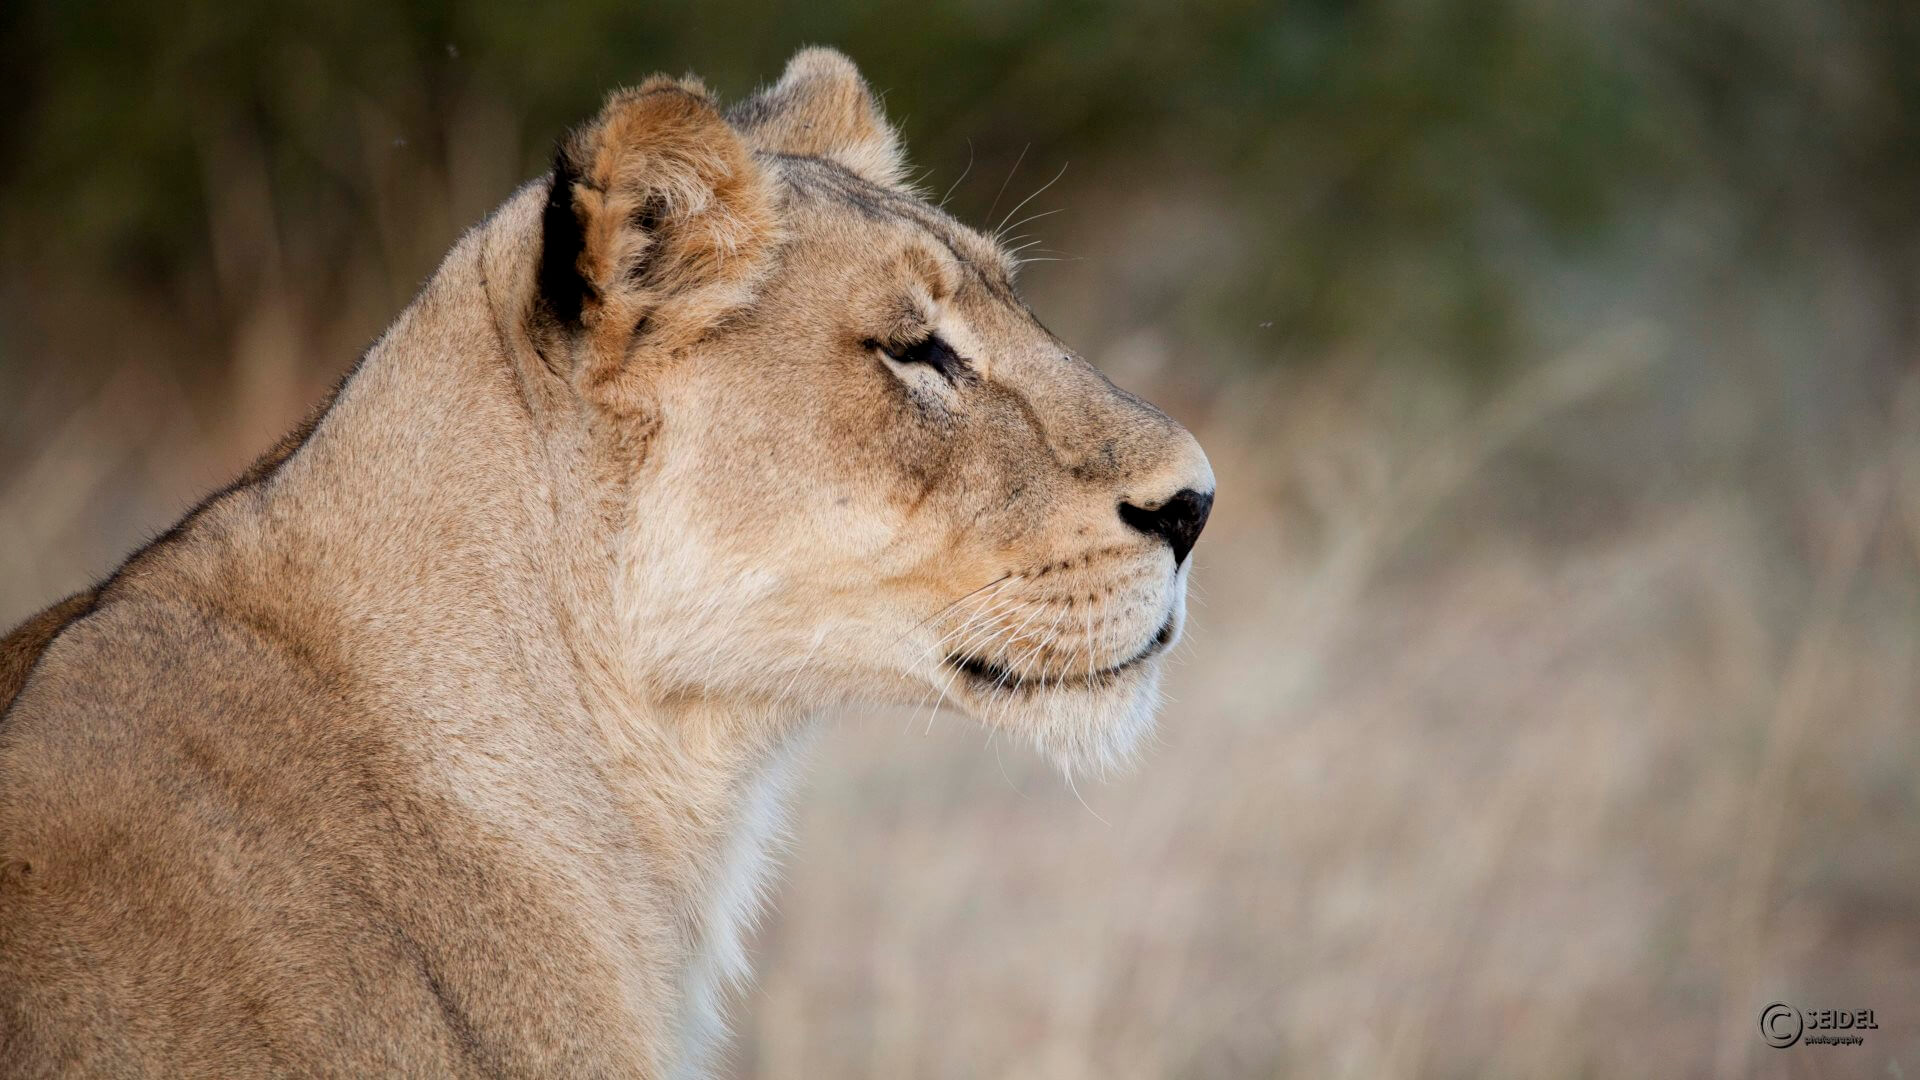 Lion looking into the far distance, Tswalu, Kalahari, South Africa